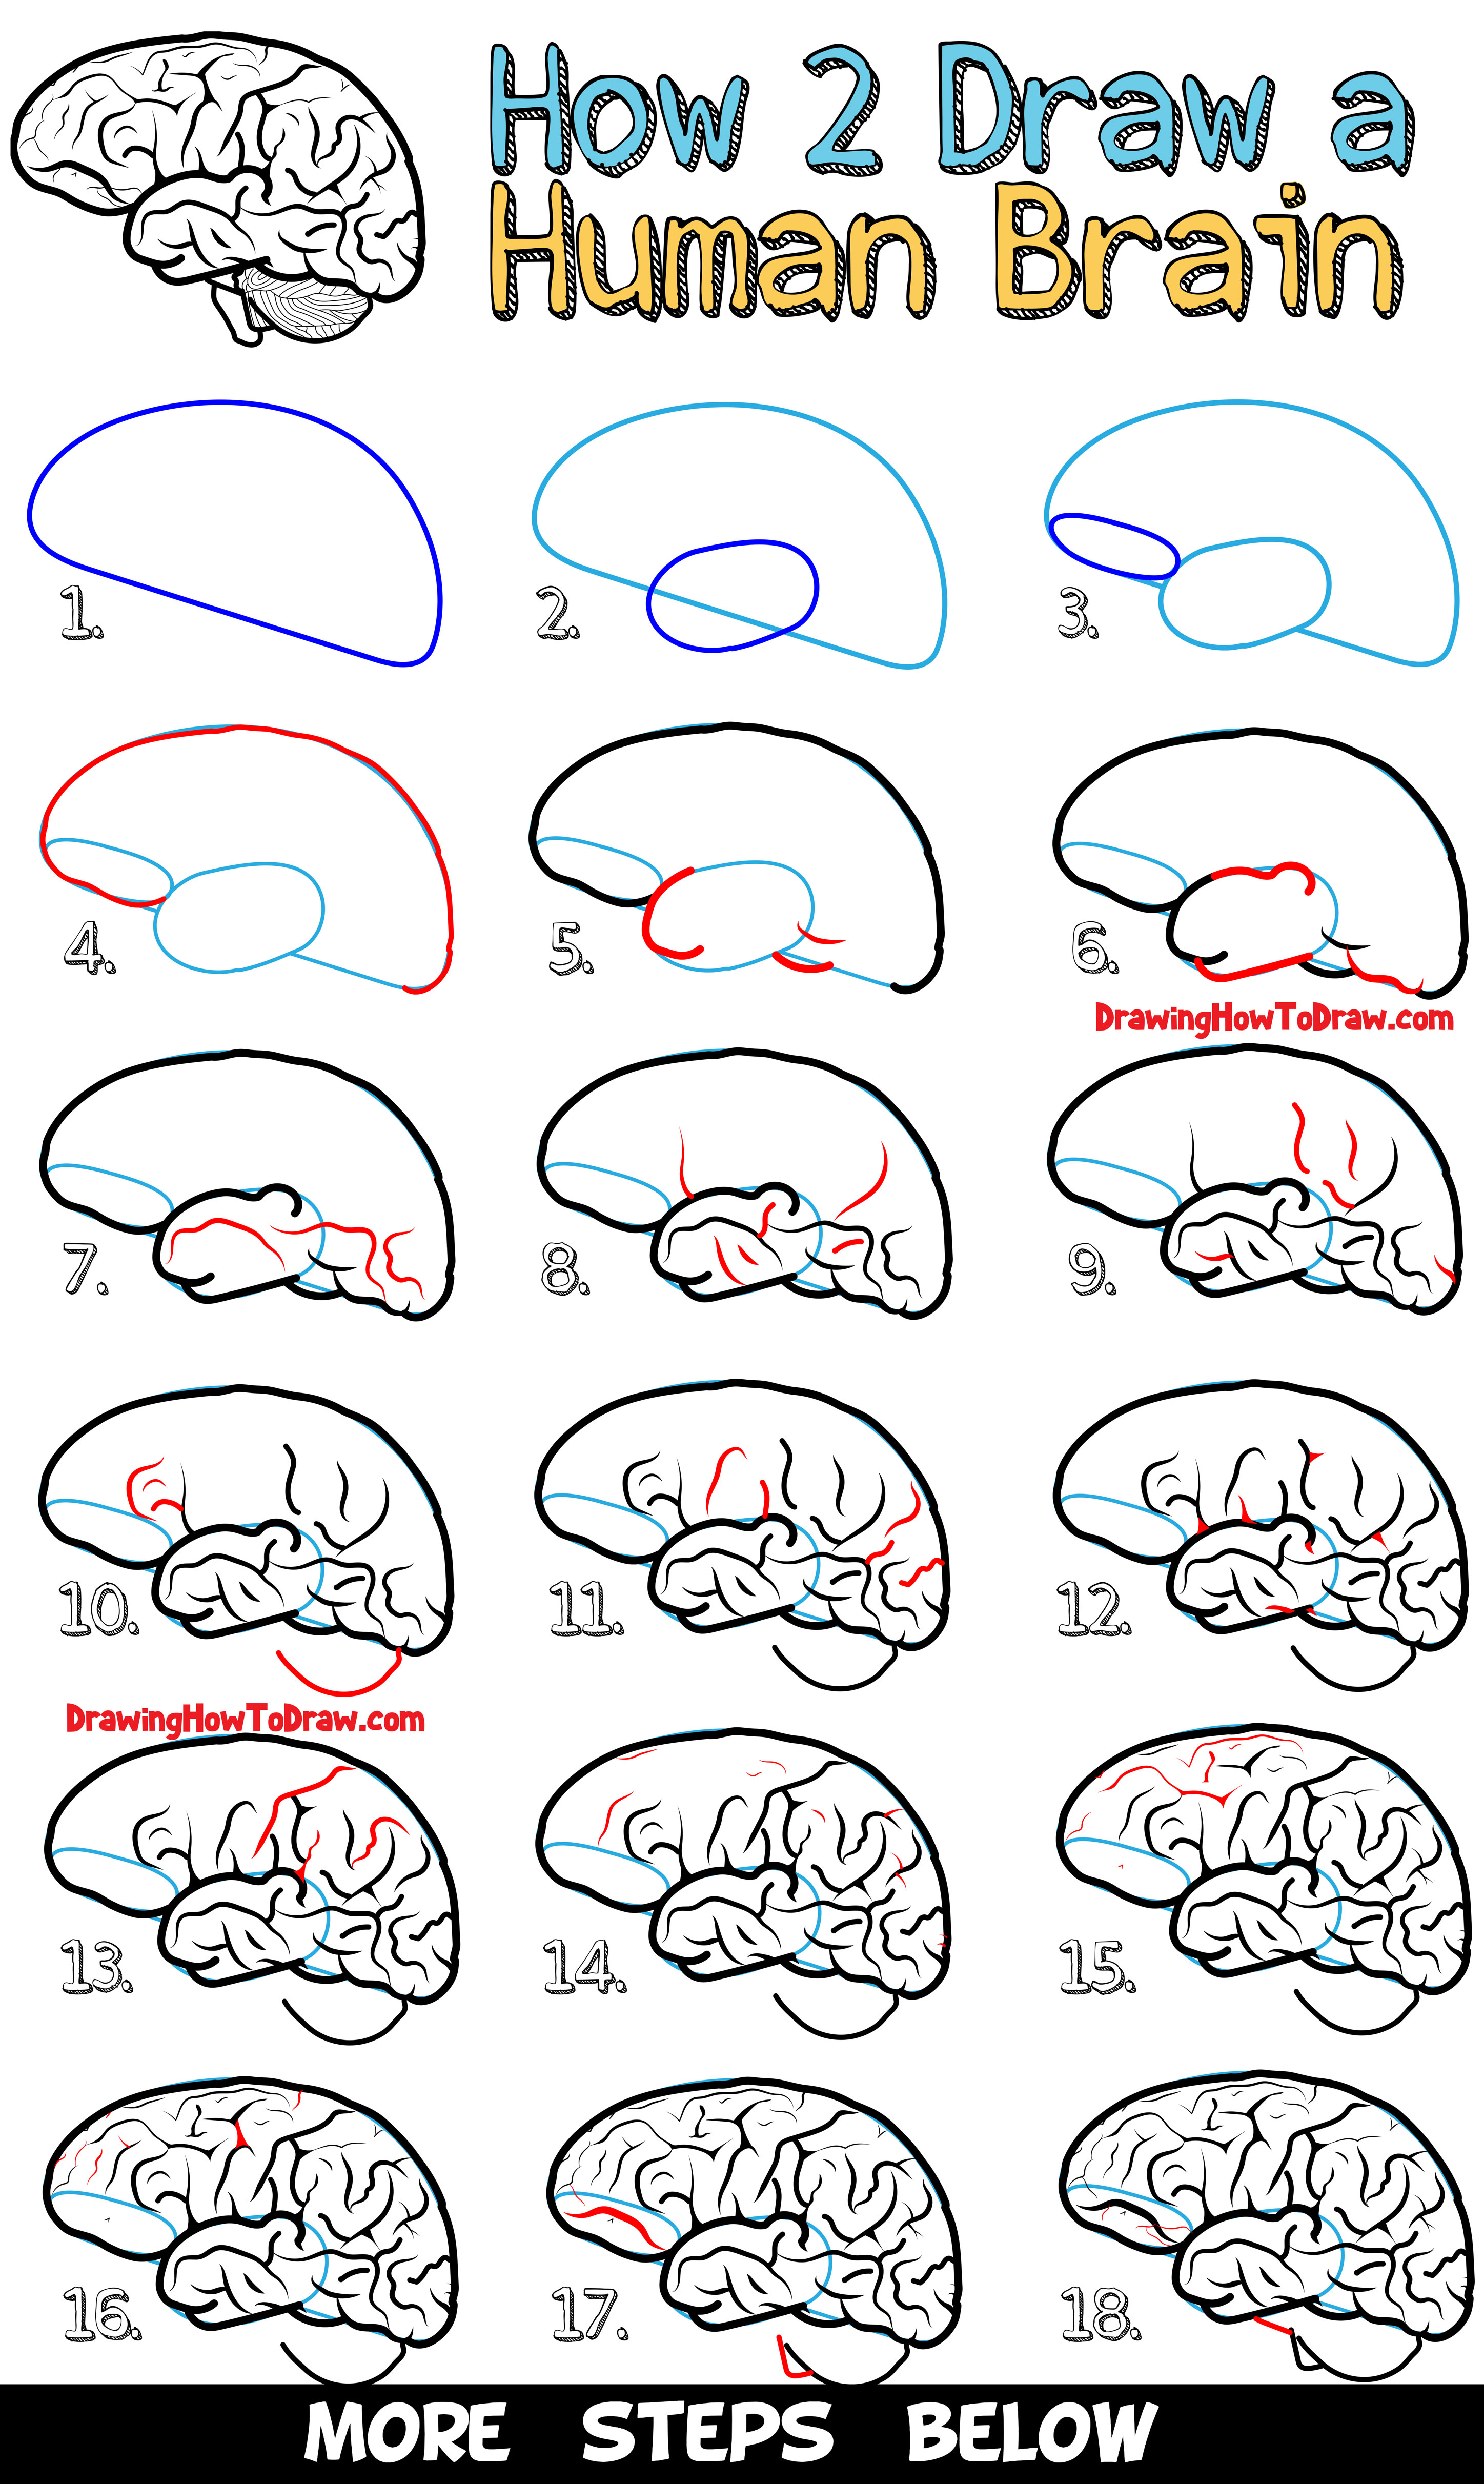 Learn How to Draw a Human Brain - Easy Steps Drawing Lesson for Beginners